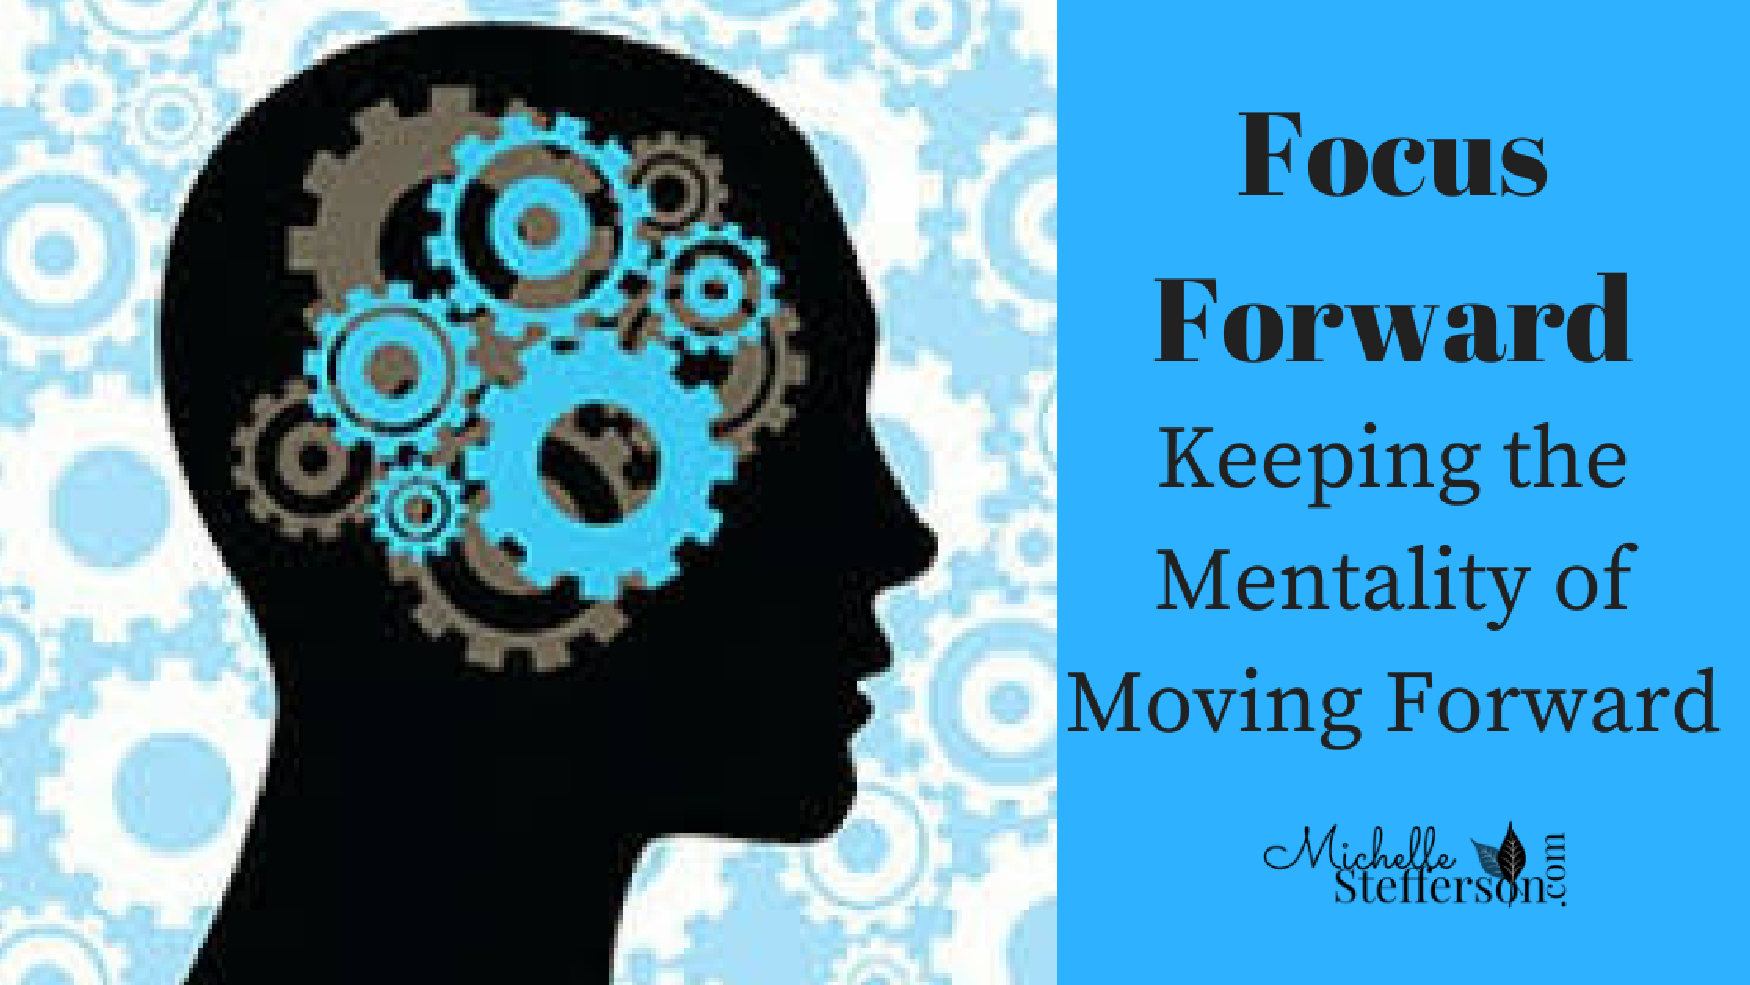 Focus Forward: Keeping the Mentality of moving forward